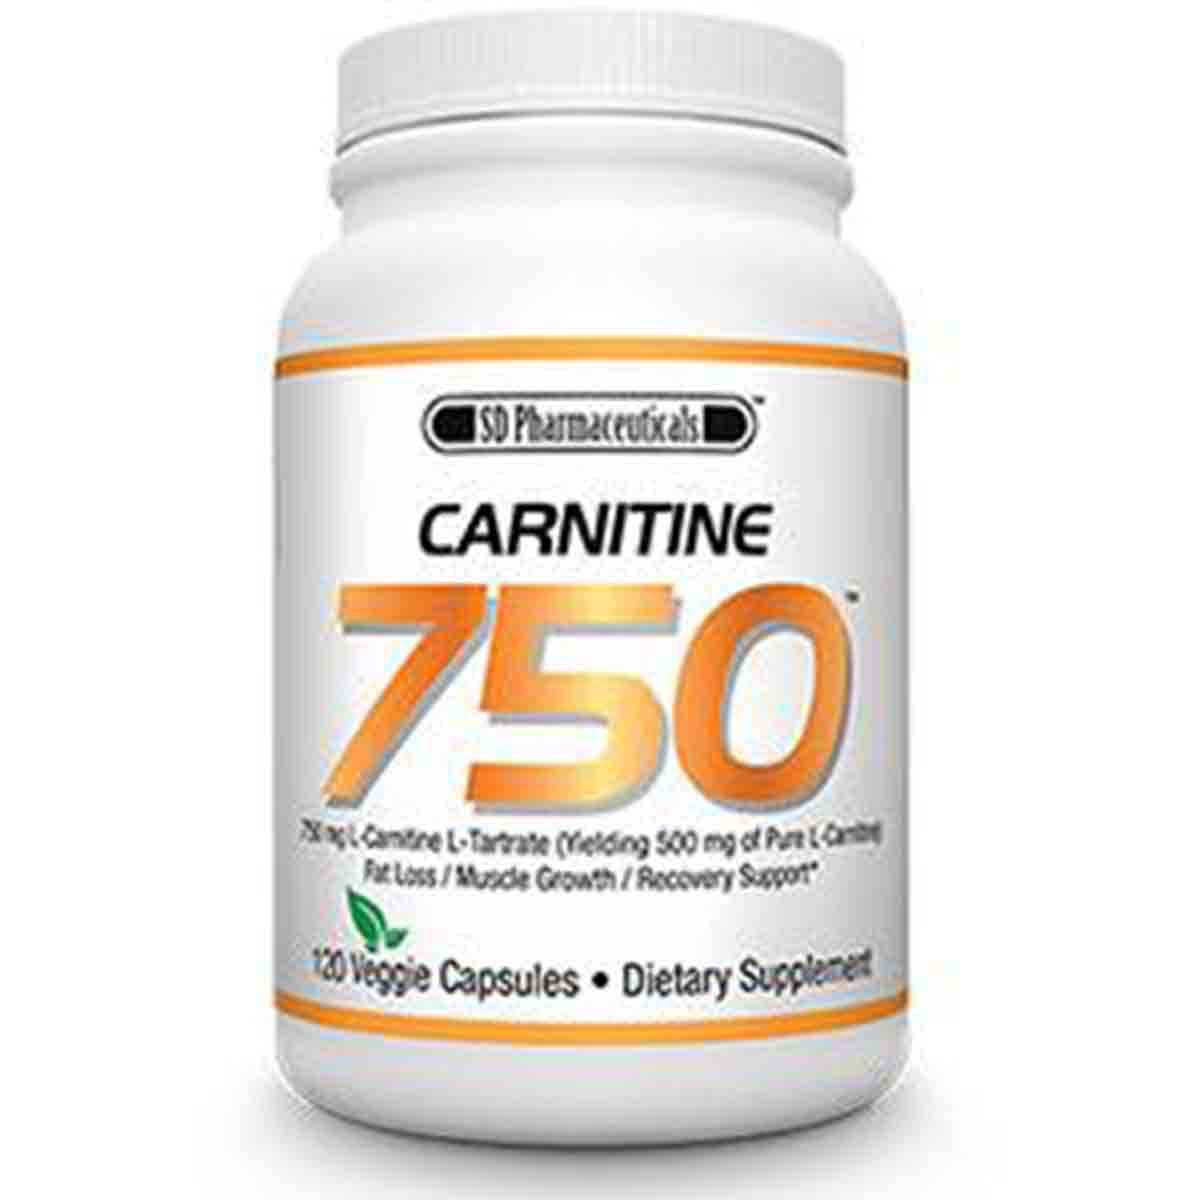 SD Pharmaceuticals Carnitine 750